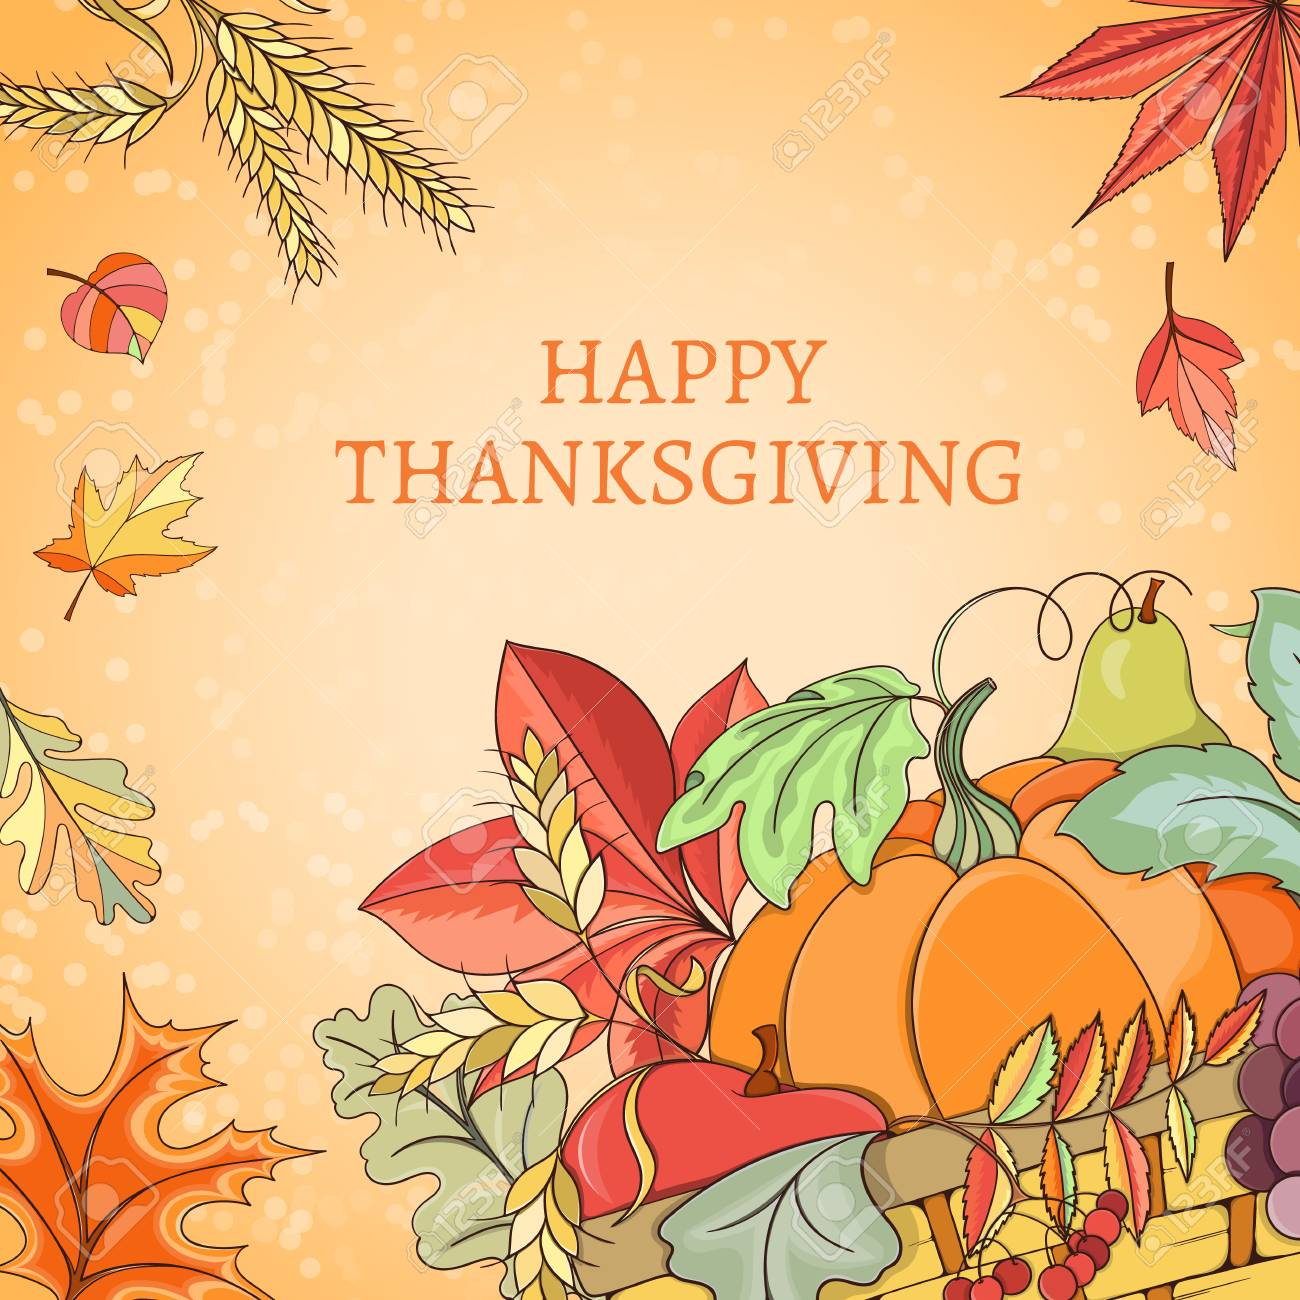 Thanksgiving Card Can Be Used For Can Be Used For Holiday Cards